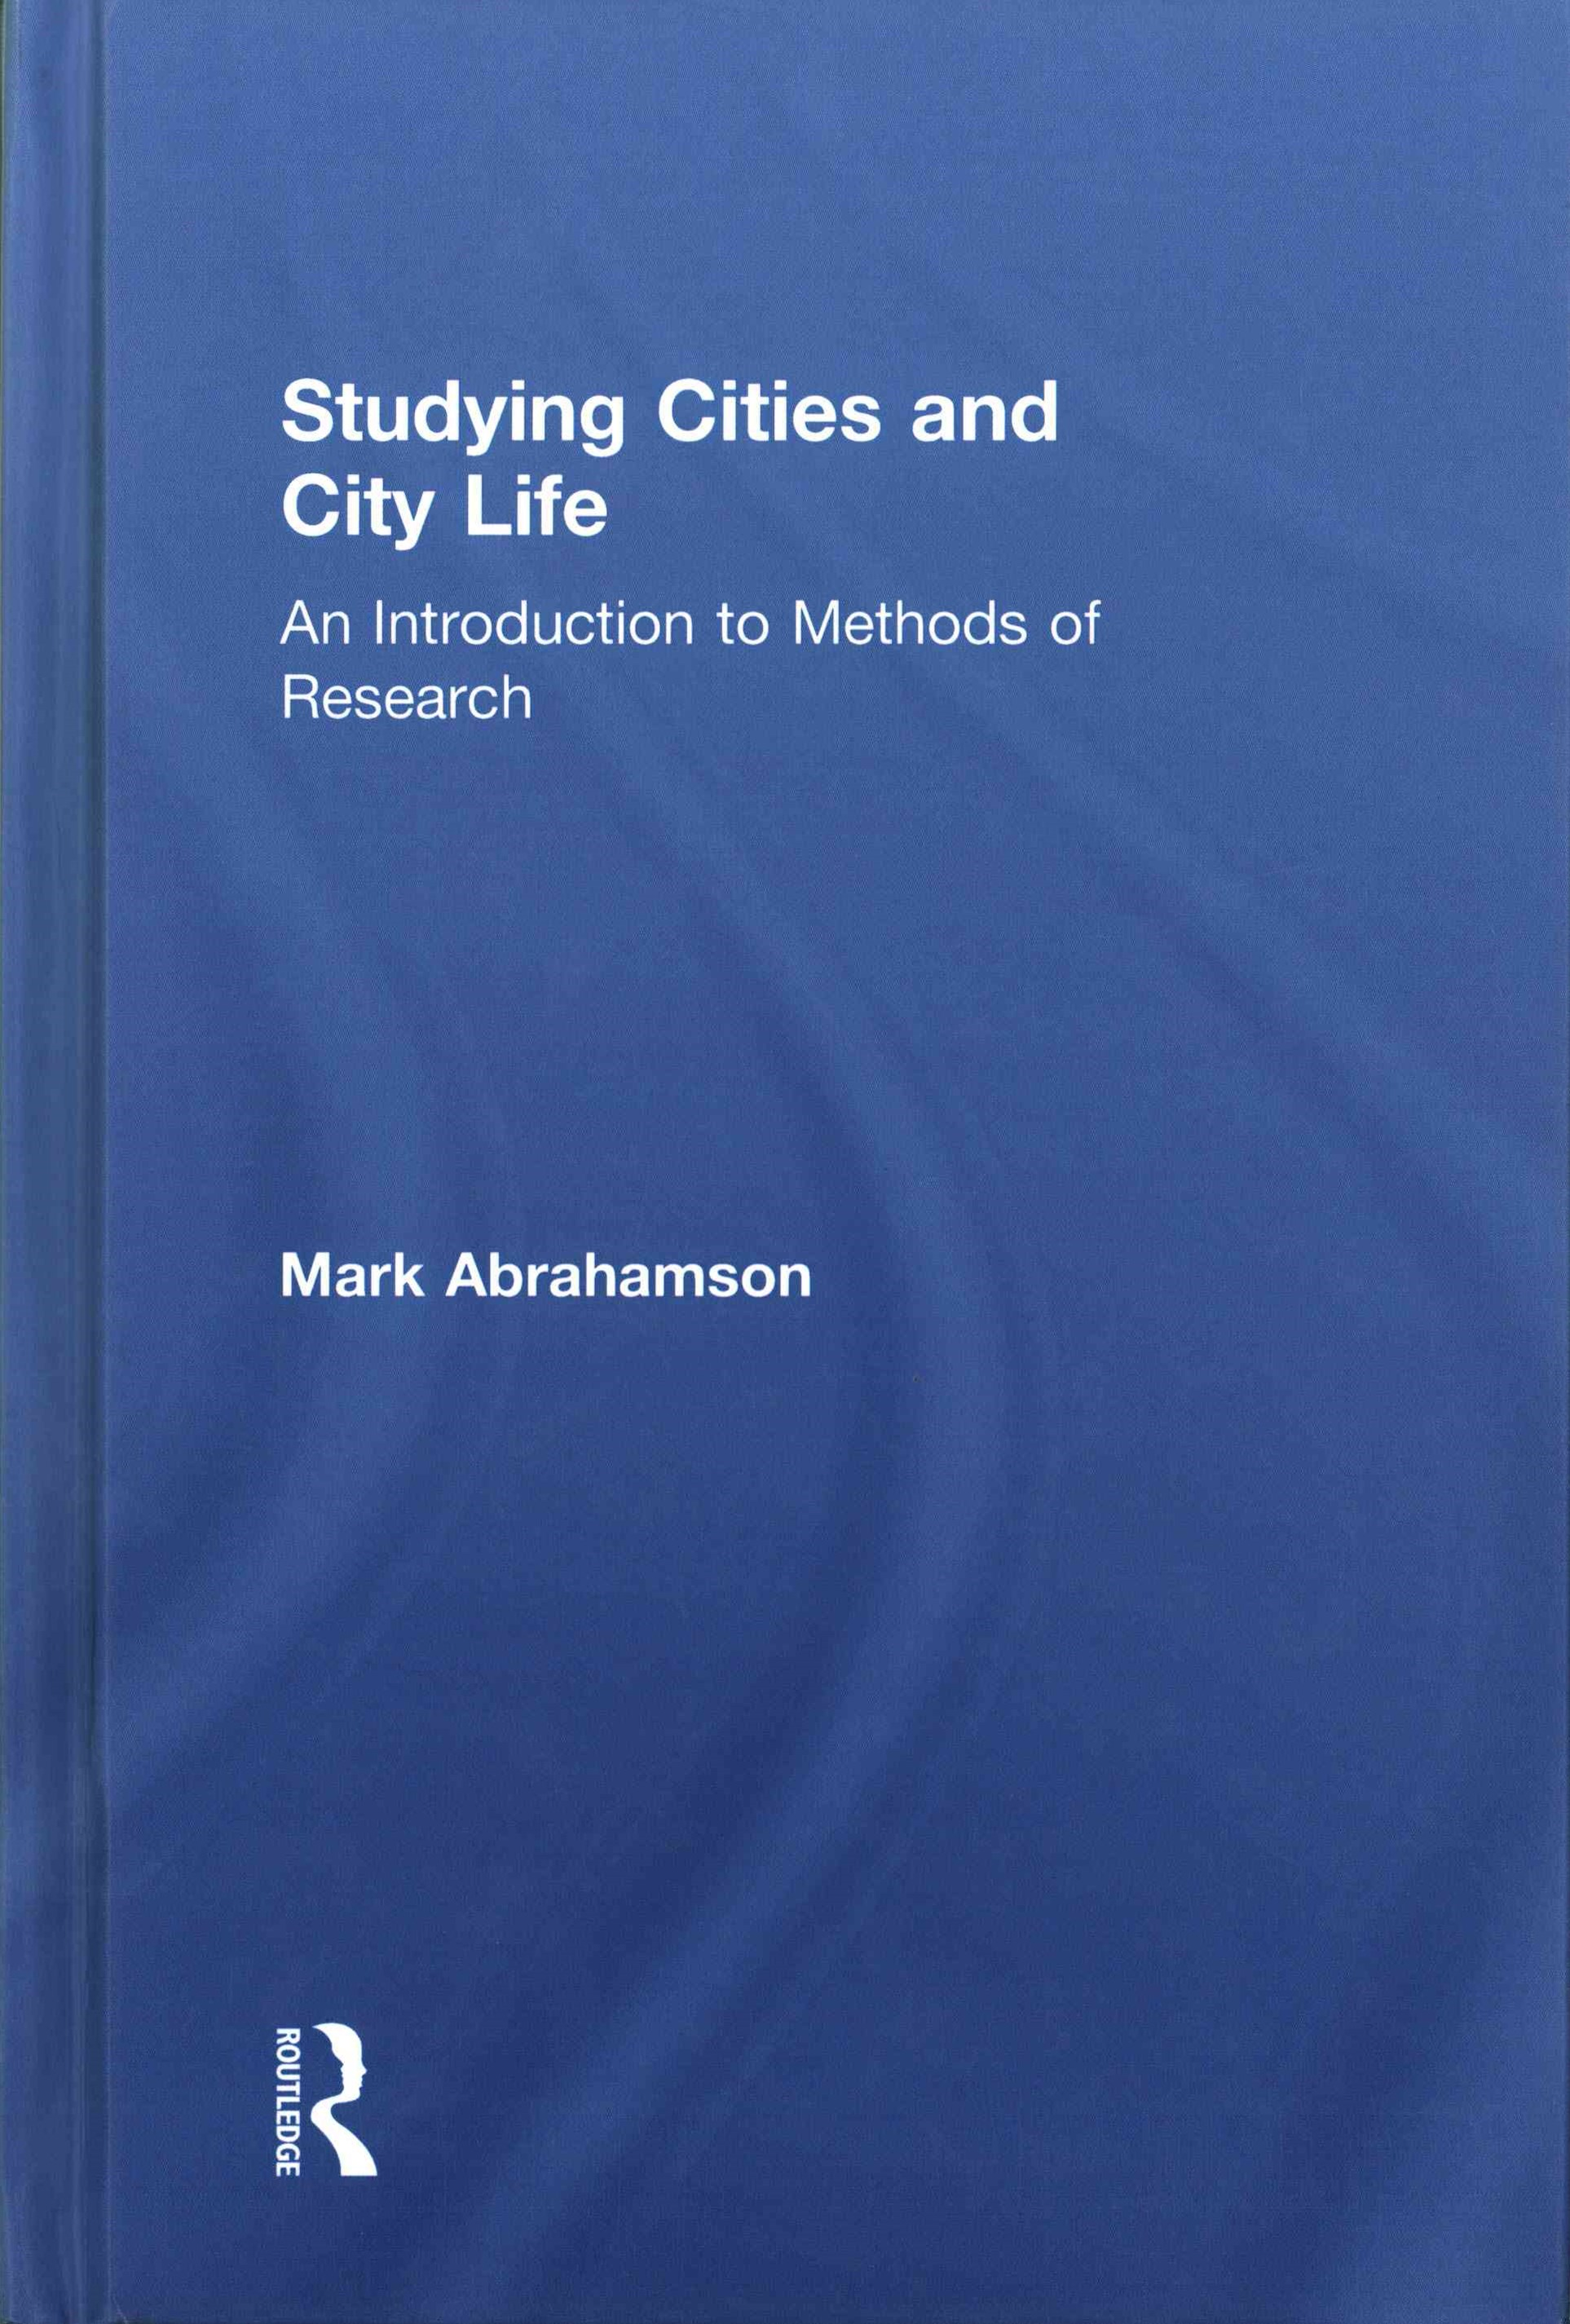 Studying Cities and City Life